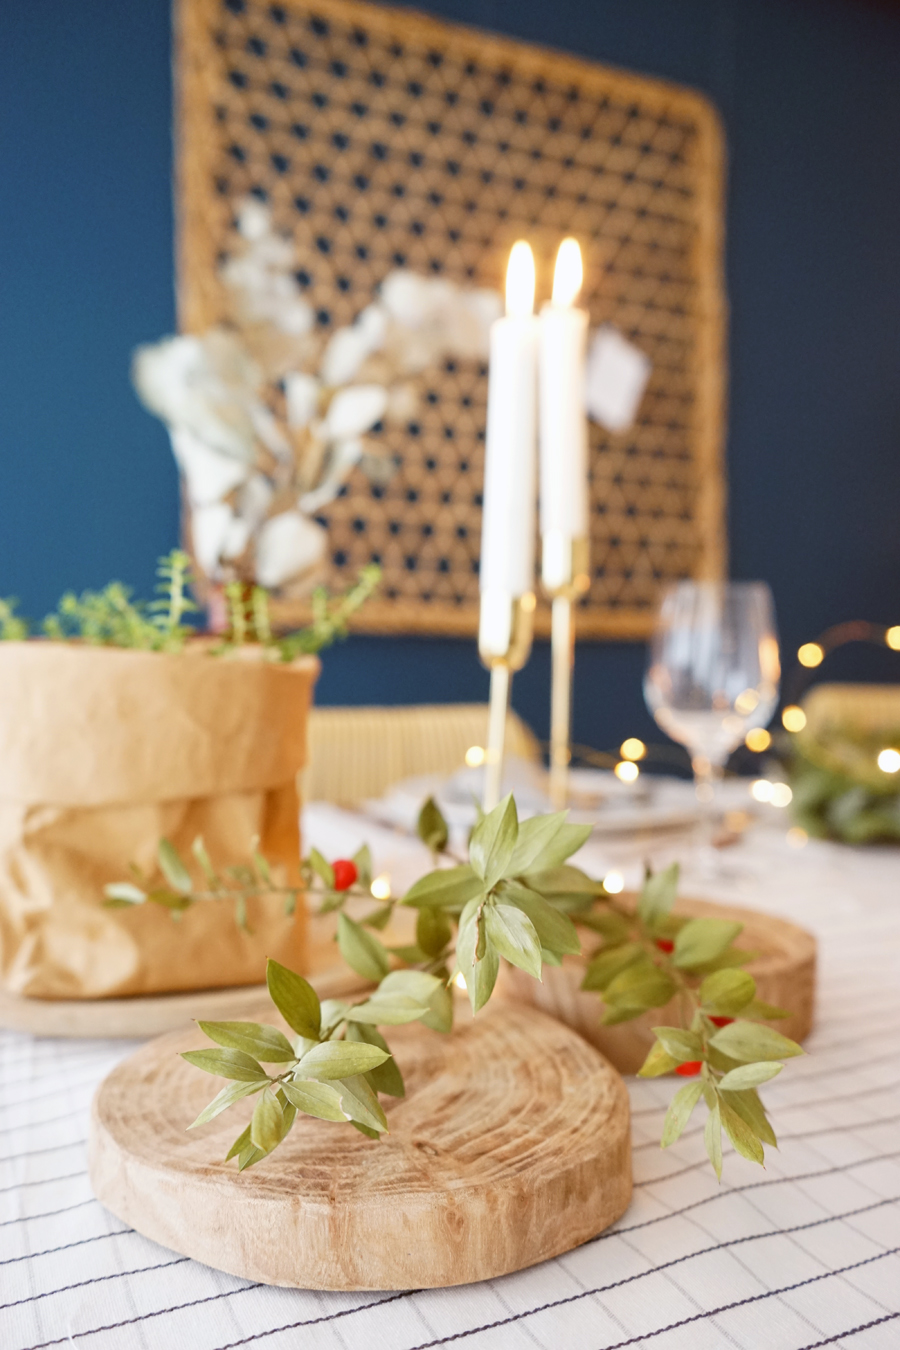 ma_table_de_fetes_scandinave_inspiration_noel_8